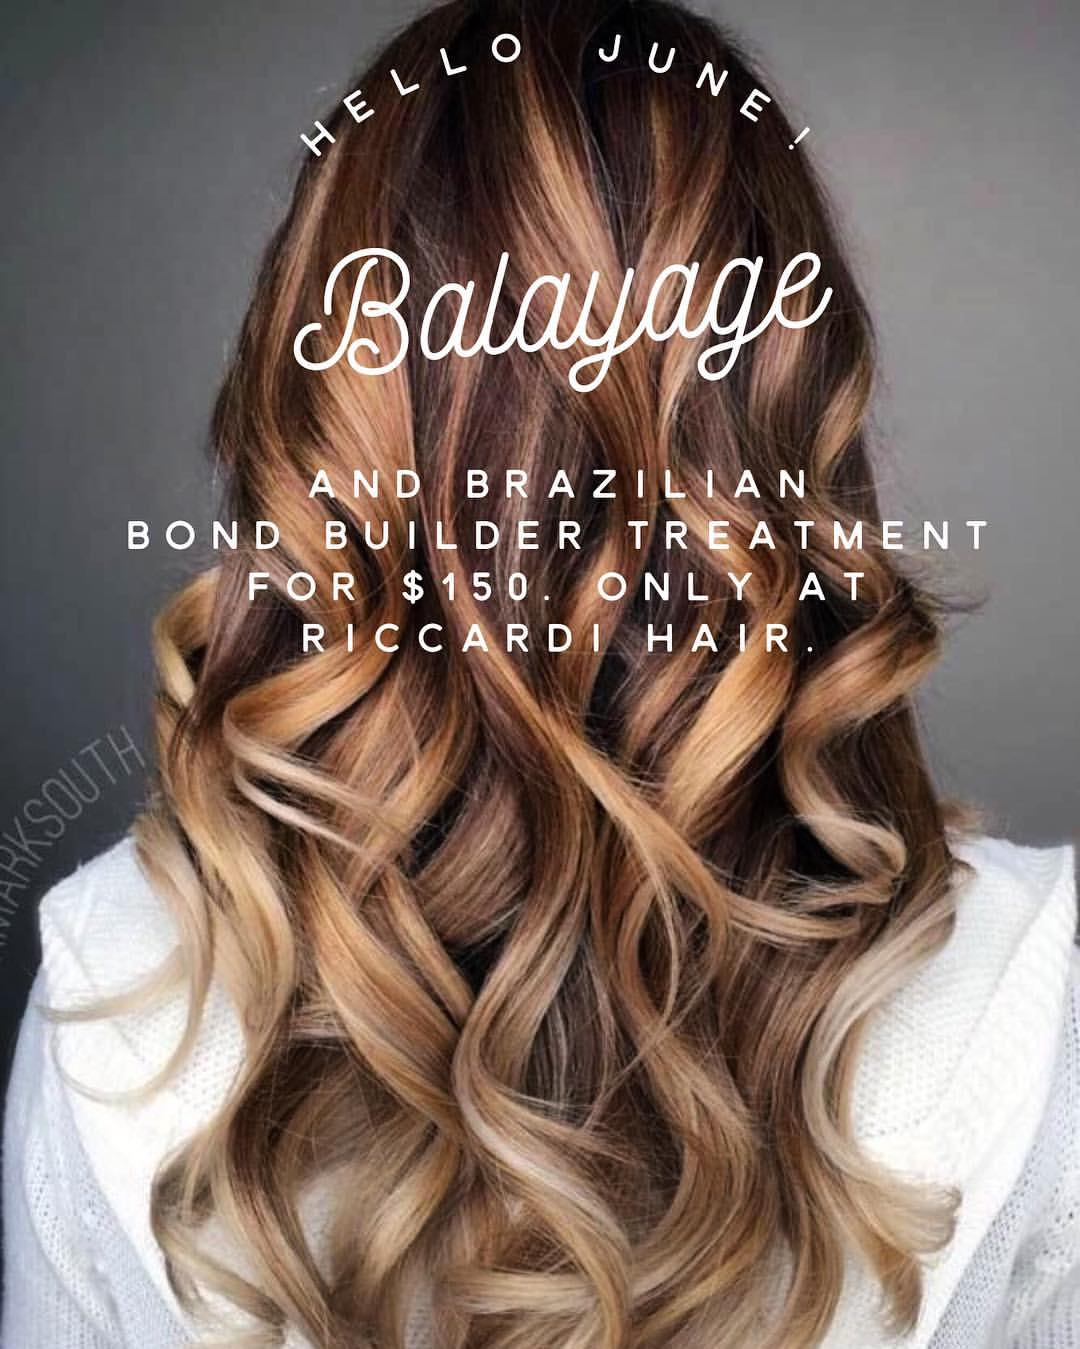 Riccardi Hair Balayage and Brazilian Bond Builder Specials!